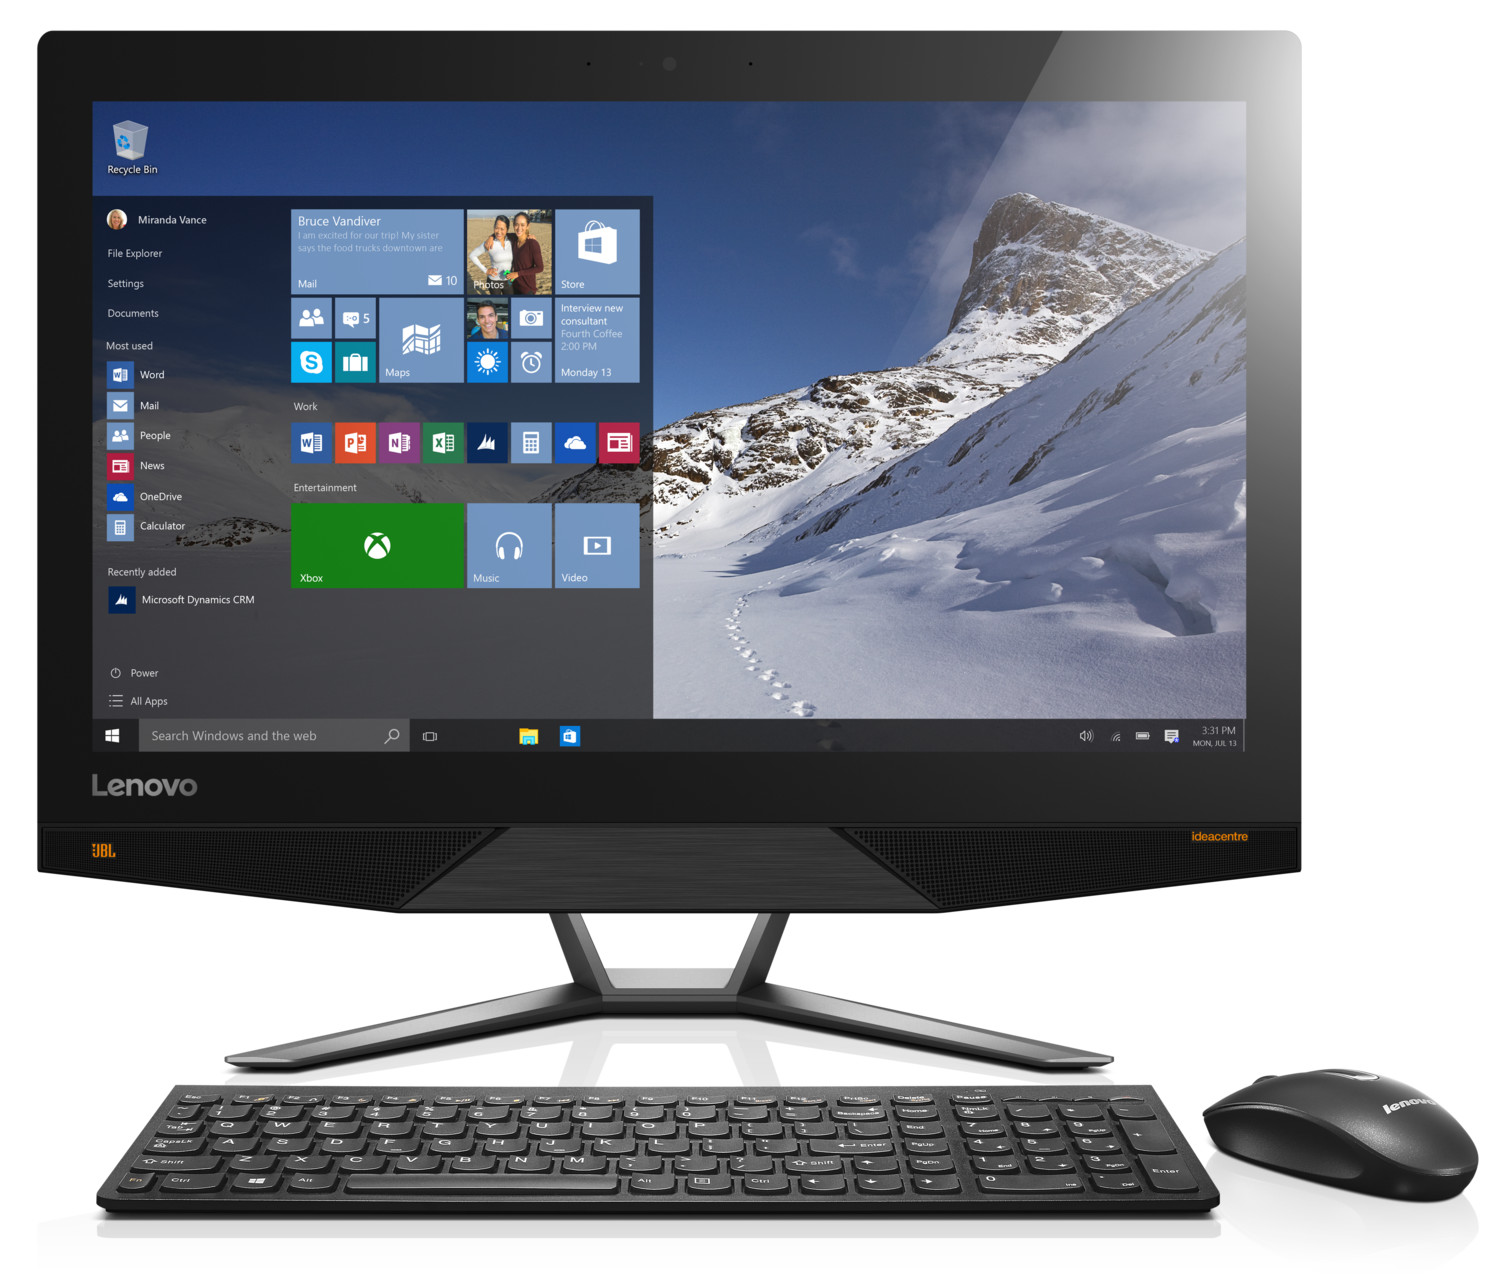 "Lenovo IdeaCentre AIO 700 i3-6100 3,70GHz/4GB/1TB/23,8"" FHD/IPS/multitouch/DVD-RW/WIN10 bílá F0BE0081CK"